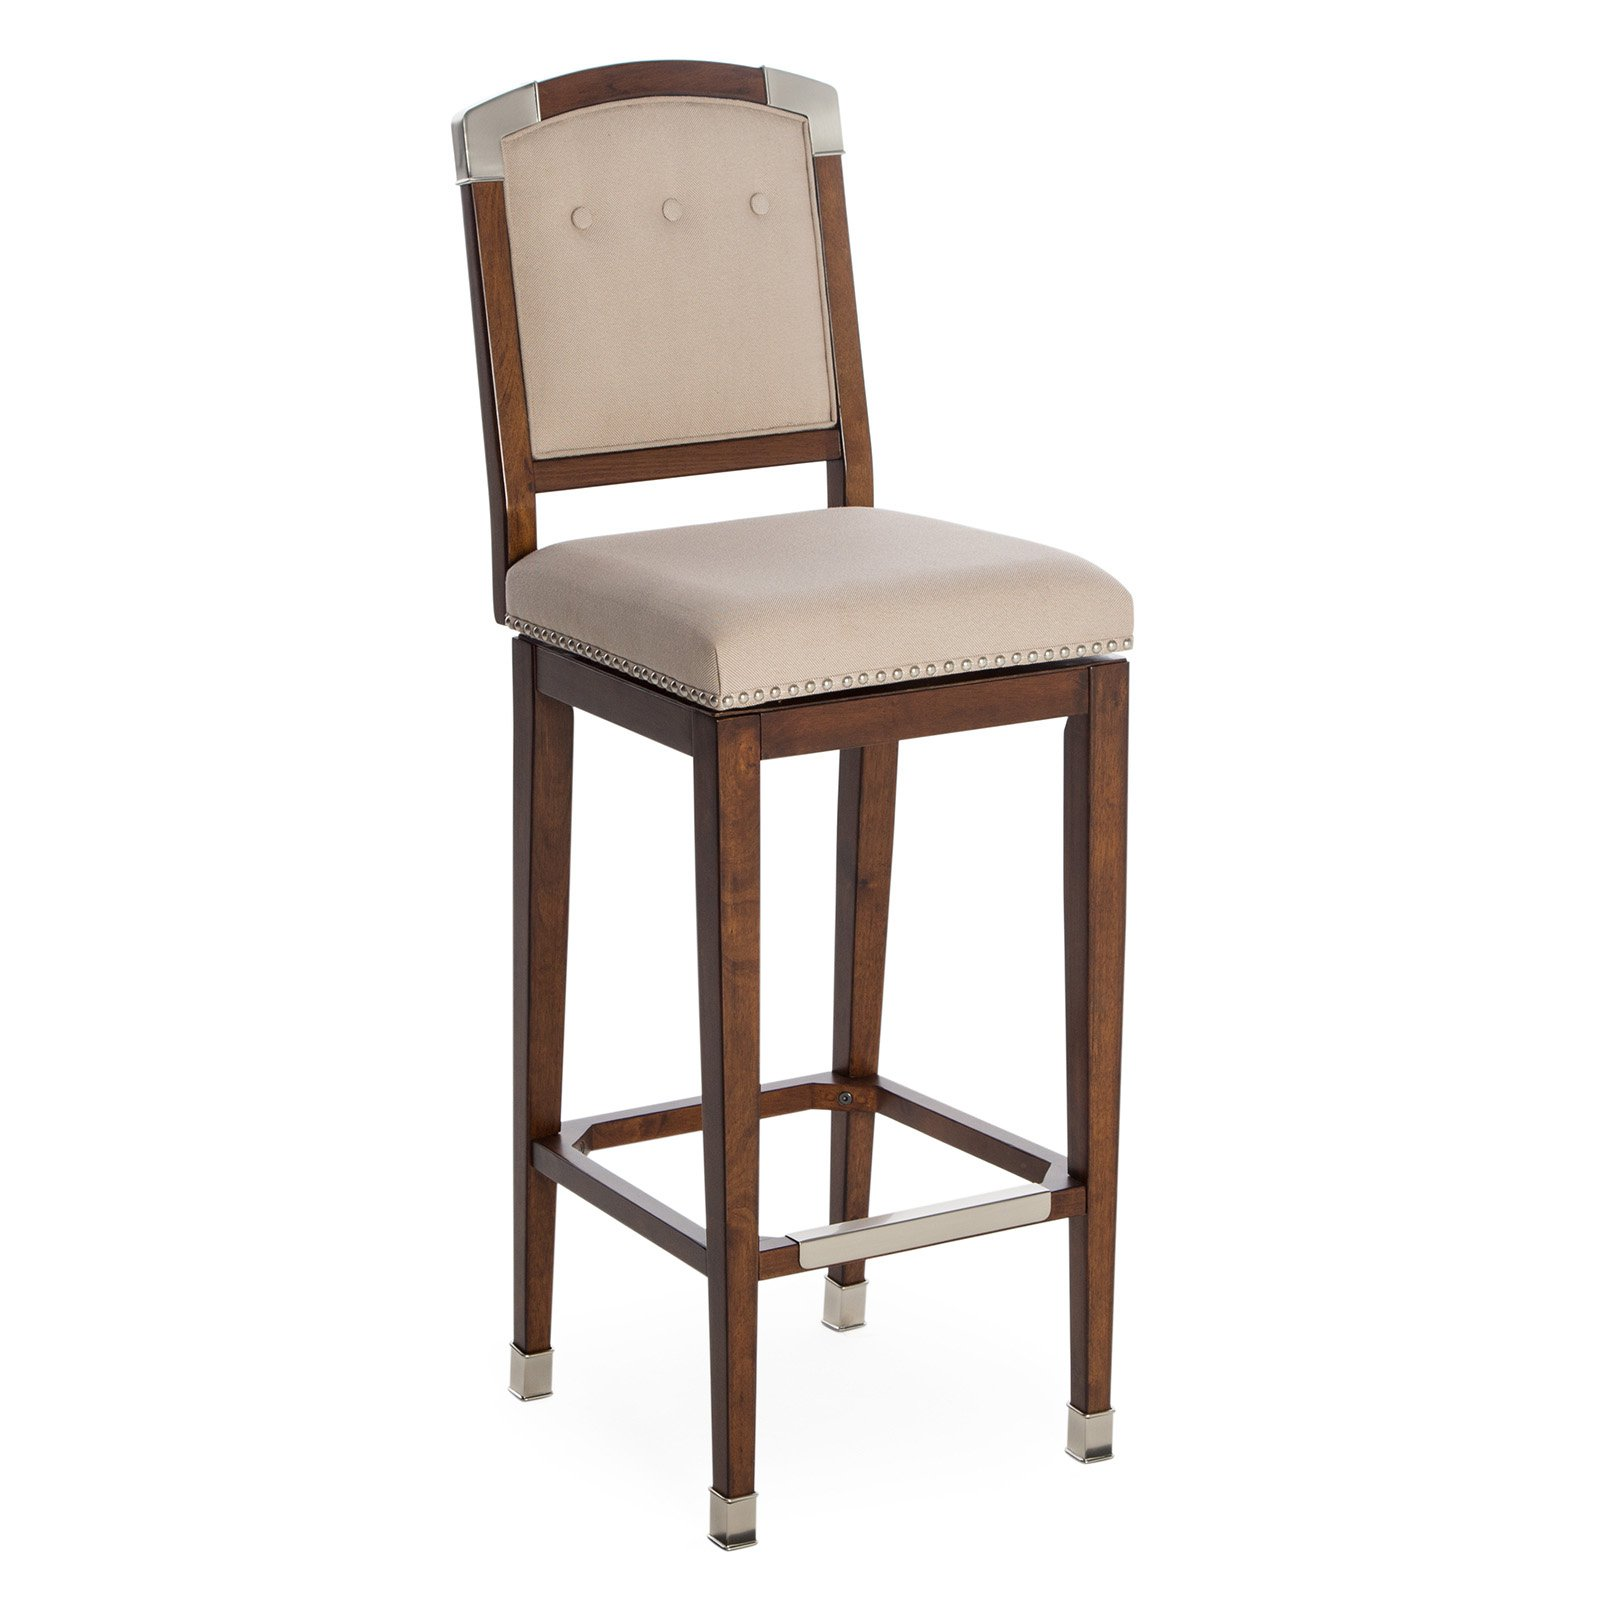 Strange Belham Living Kingston Extra Tall Bar Stool Ivory Products Machost Co Dining Chair Design Ideas Machostcouk